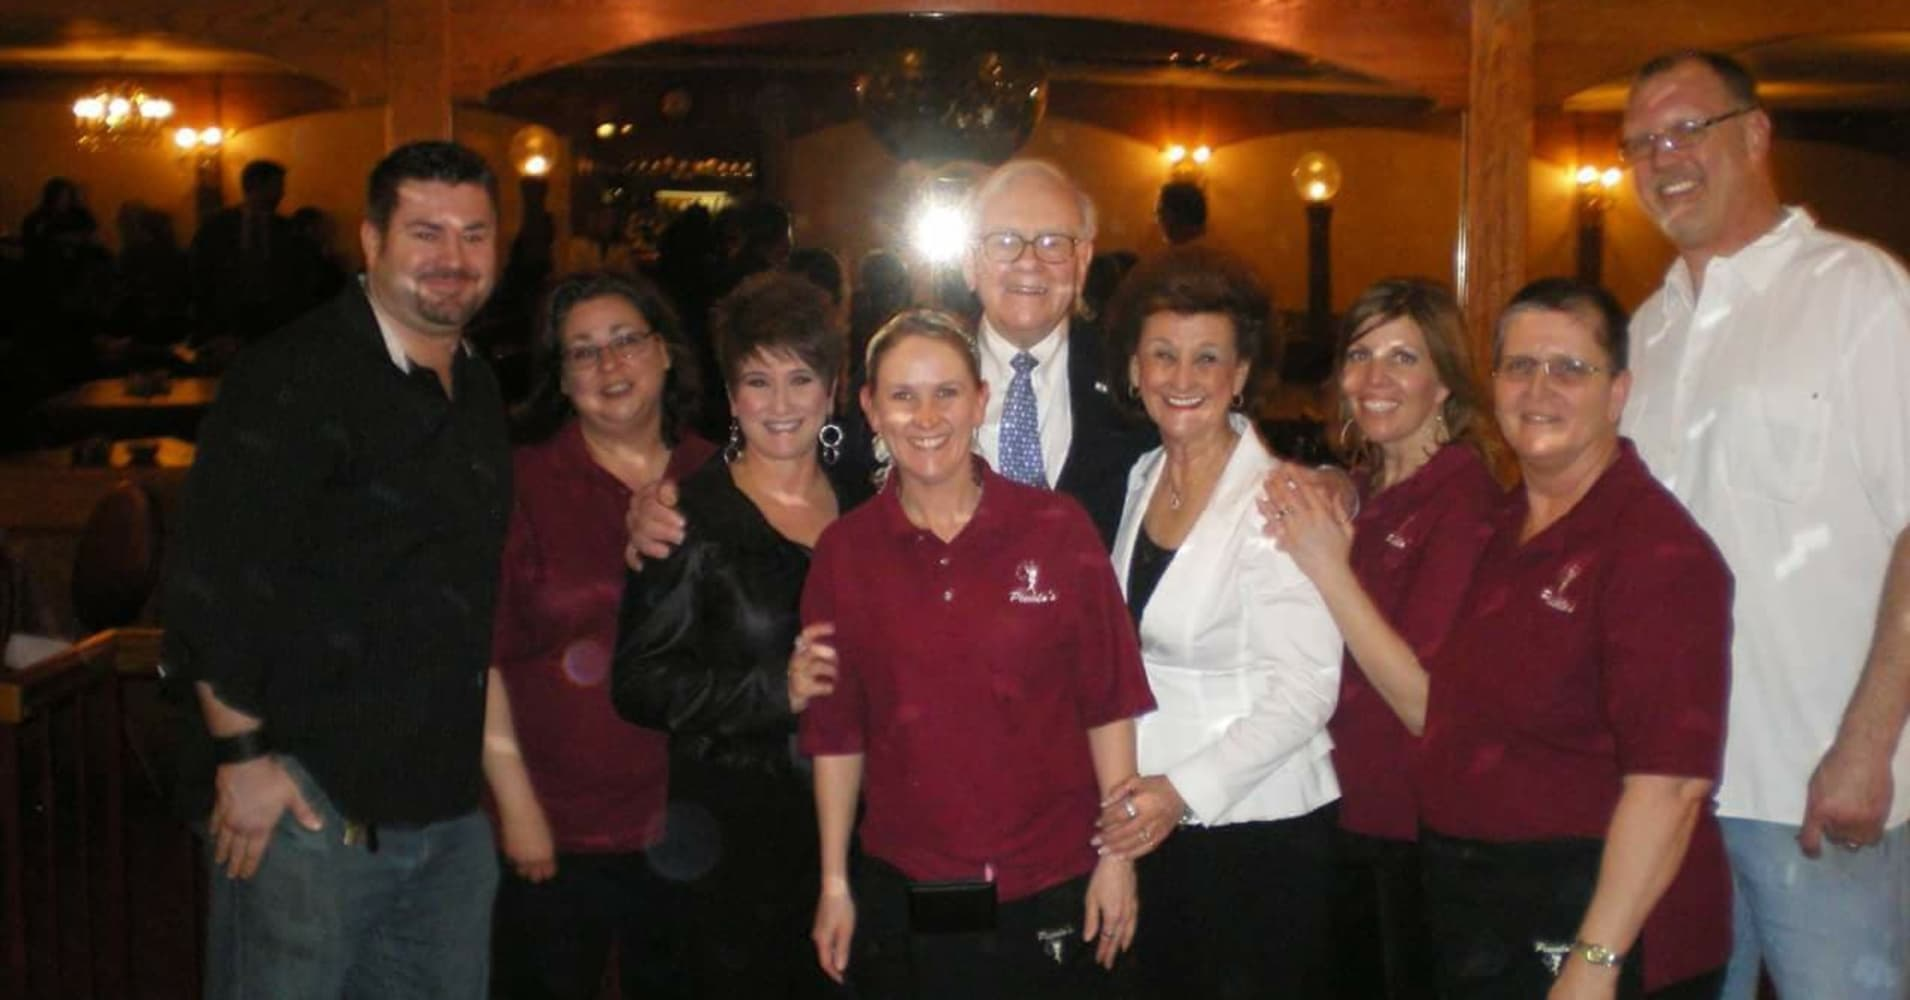 Piccolo's waitress Ellen Augustine (front center) pictured with Warren Buffett (back center) and Piccolo's former owners Dee Graves (right) and Donna Sheehan (left) in 2011.